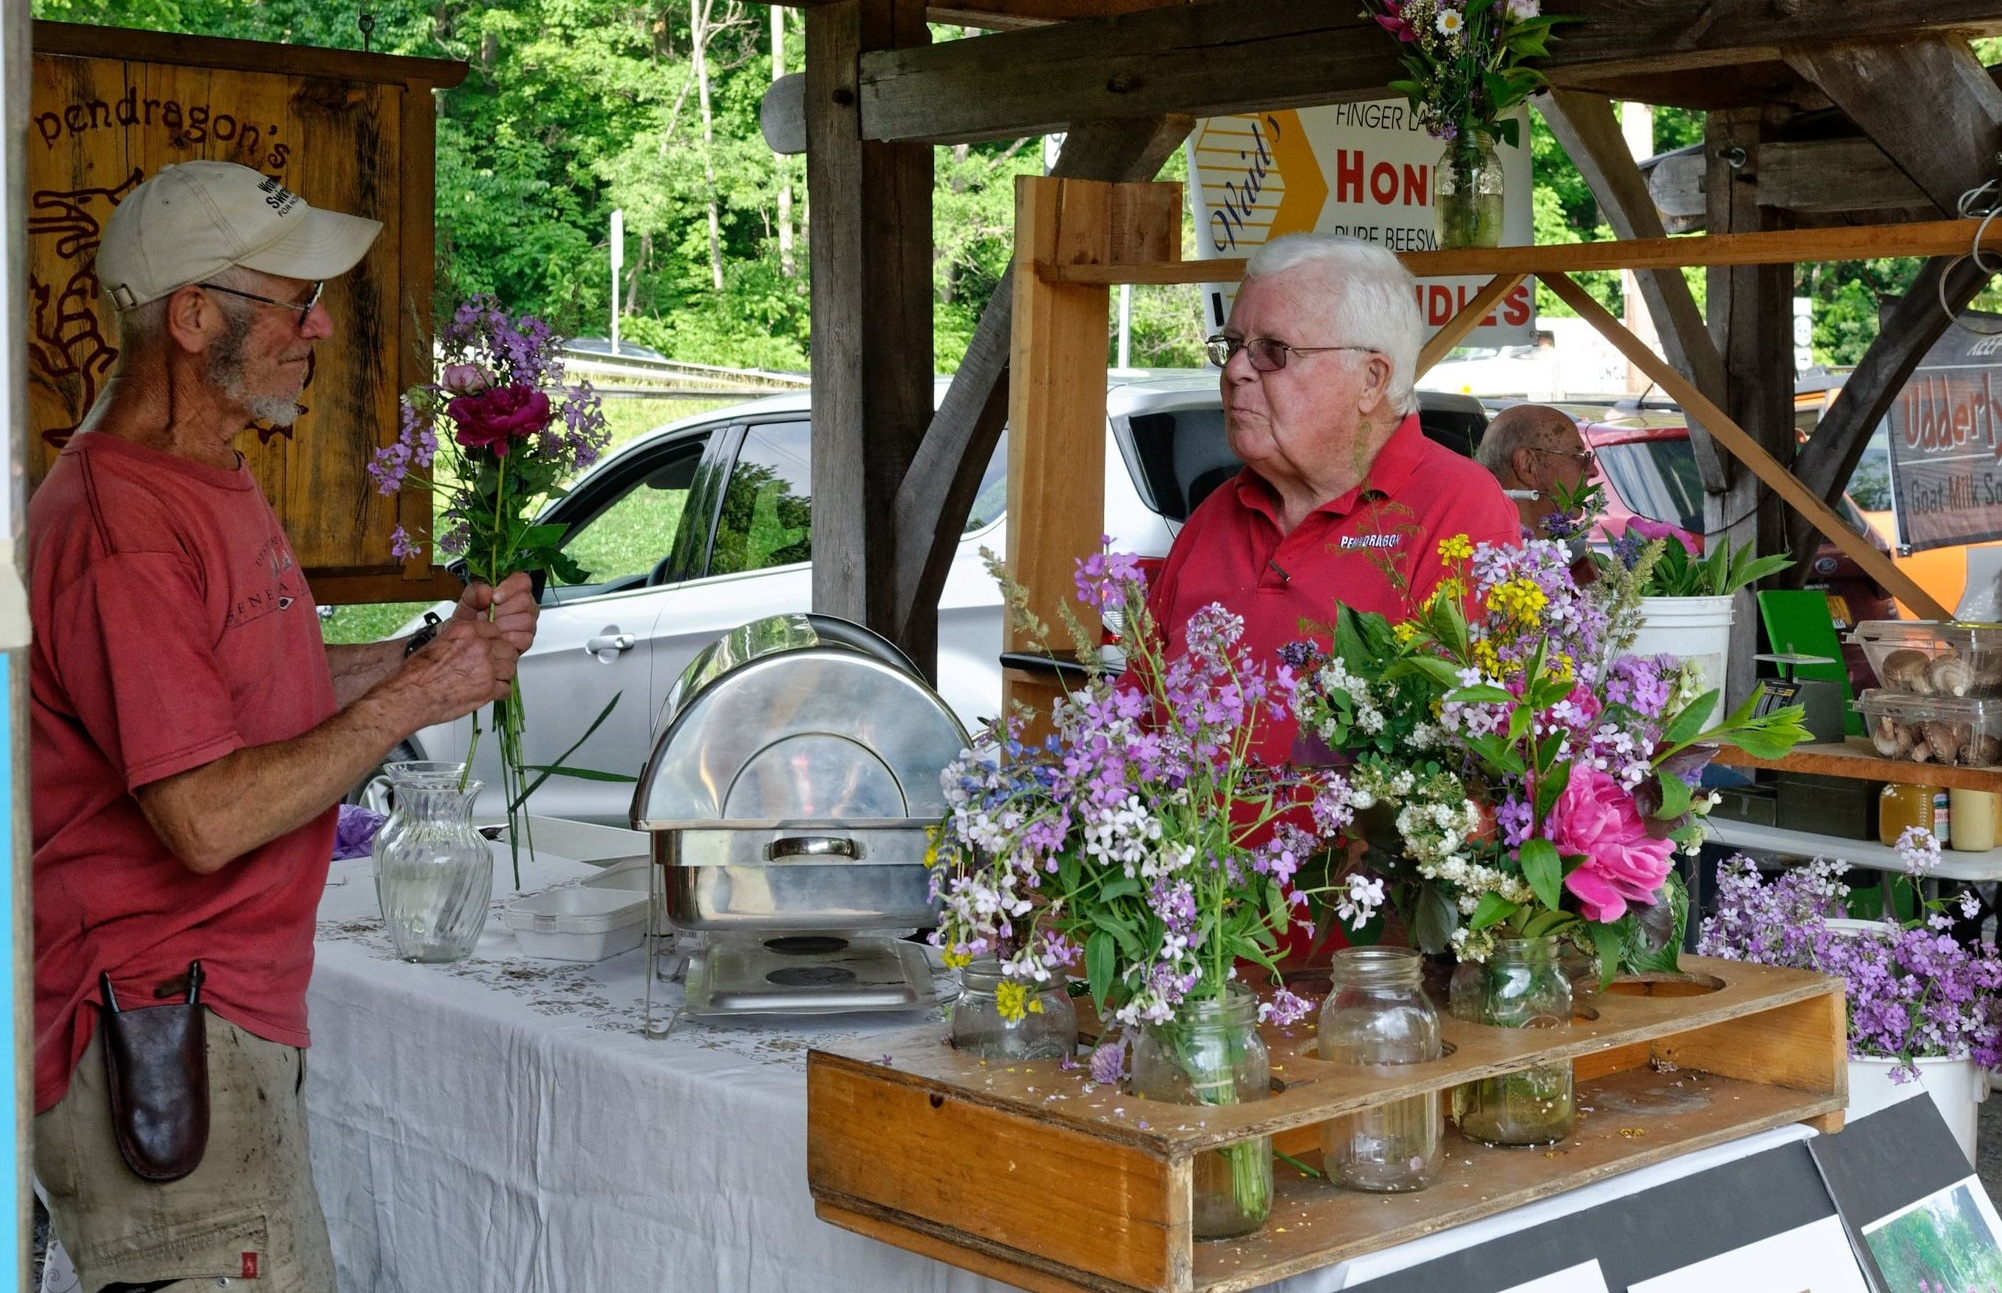 Meet our Vendors - Nestled inside the beautiful Village Park, our seasonal vendors gather weekly to bring fresh vegetables & fruit, cheeses, wine, artisan crafts, and hearty dinners. All vendors are within a 30 mile radius of Trumansburg to ensure you receive quality goods from your home in the Finger Lakes!Click here to see our 2019 vendor list.